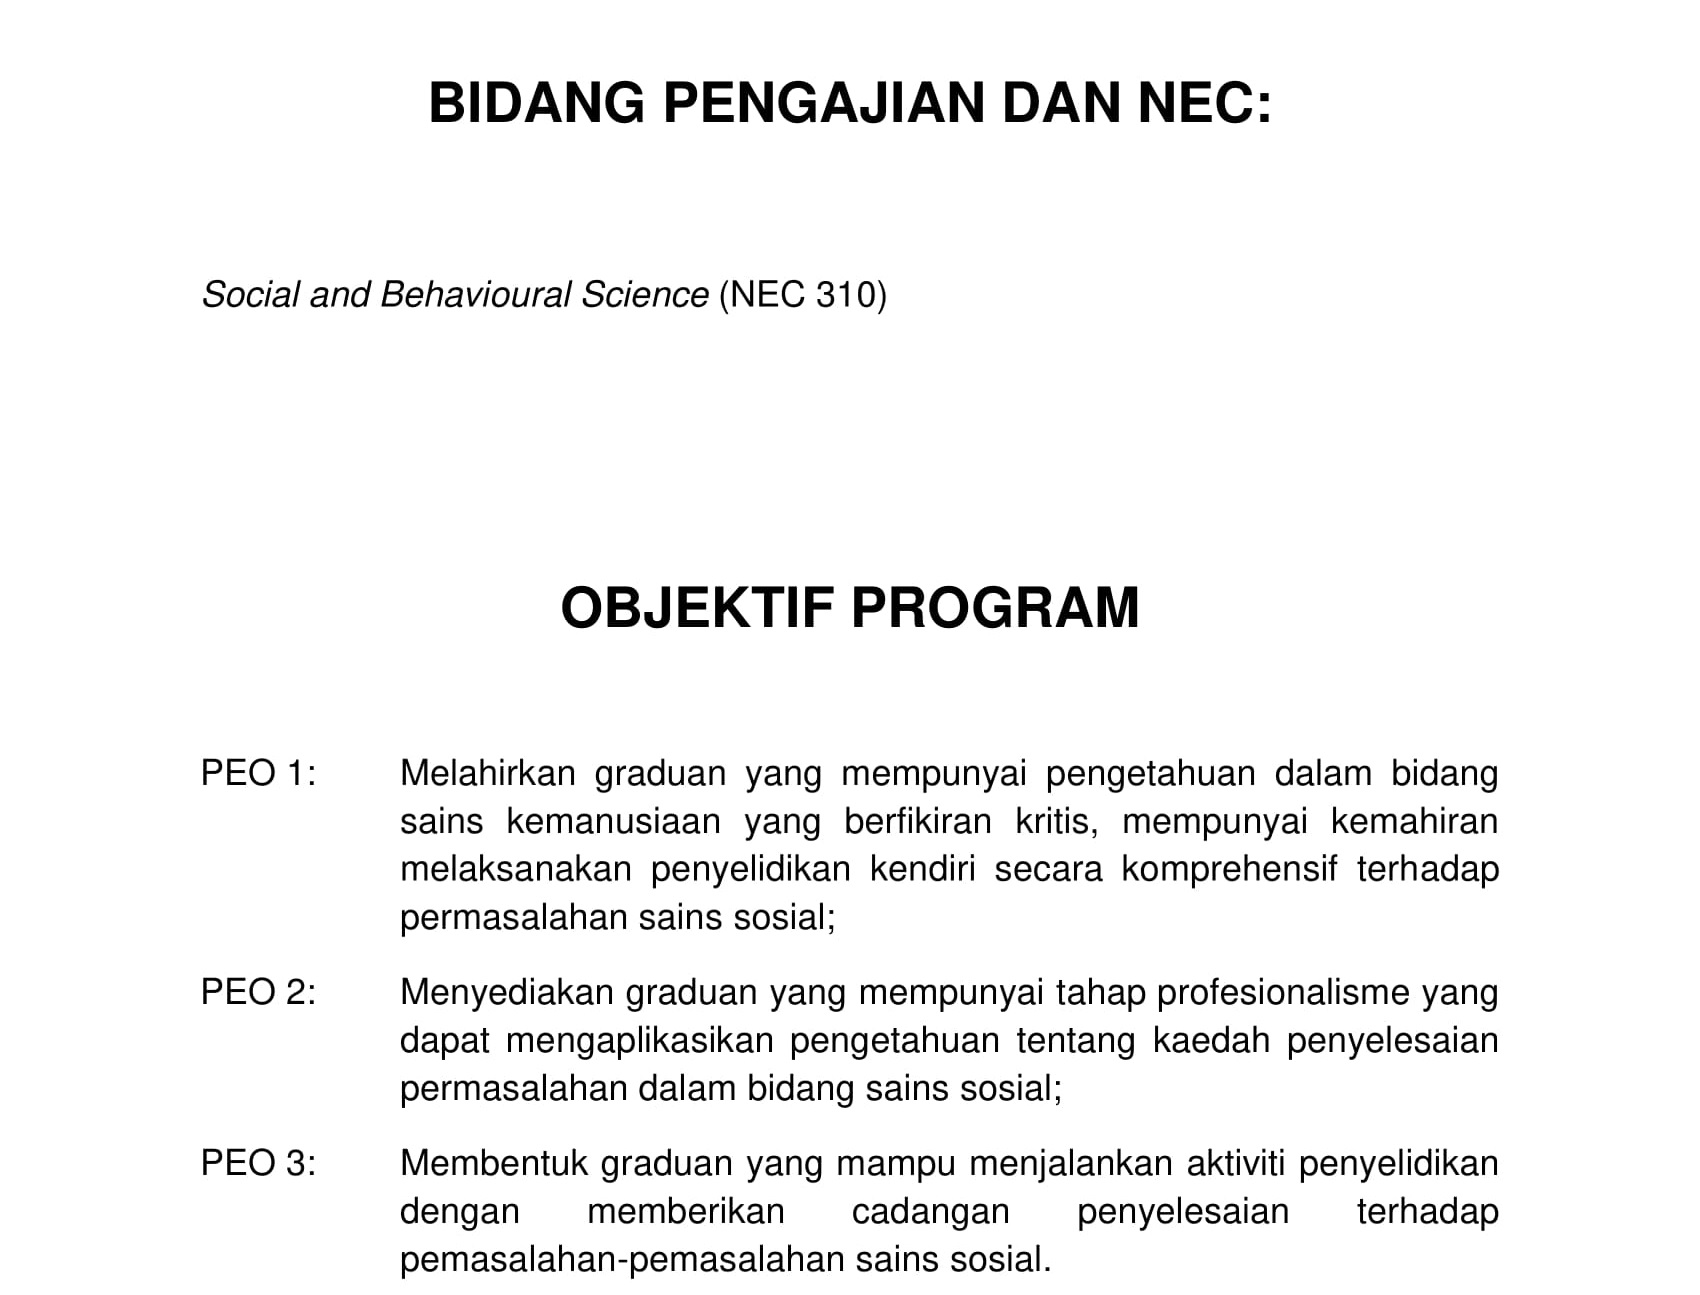 5. Sarjana Social and Behavioural Science 1